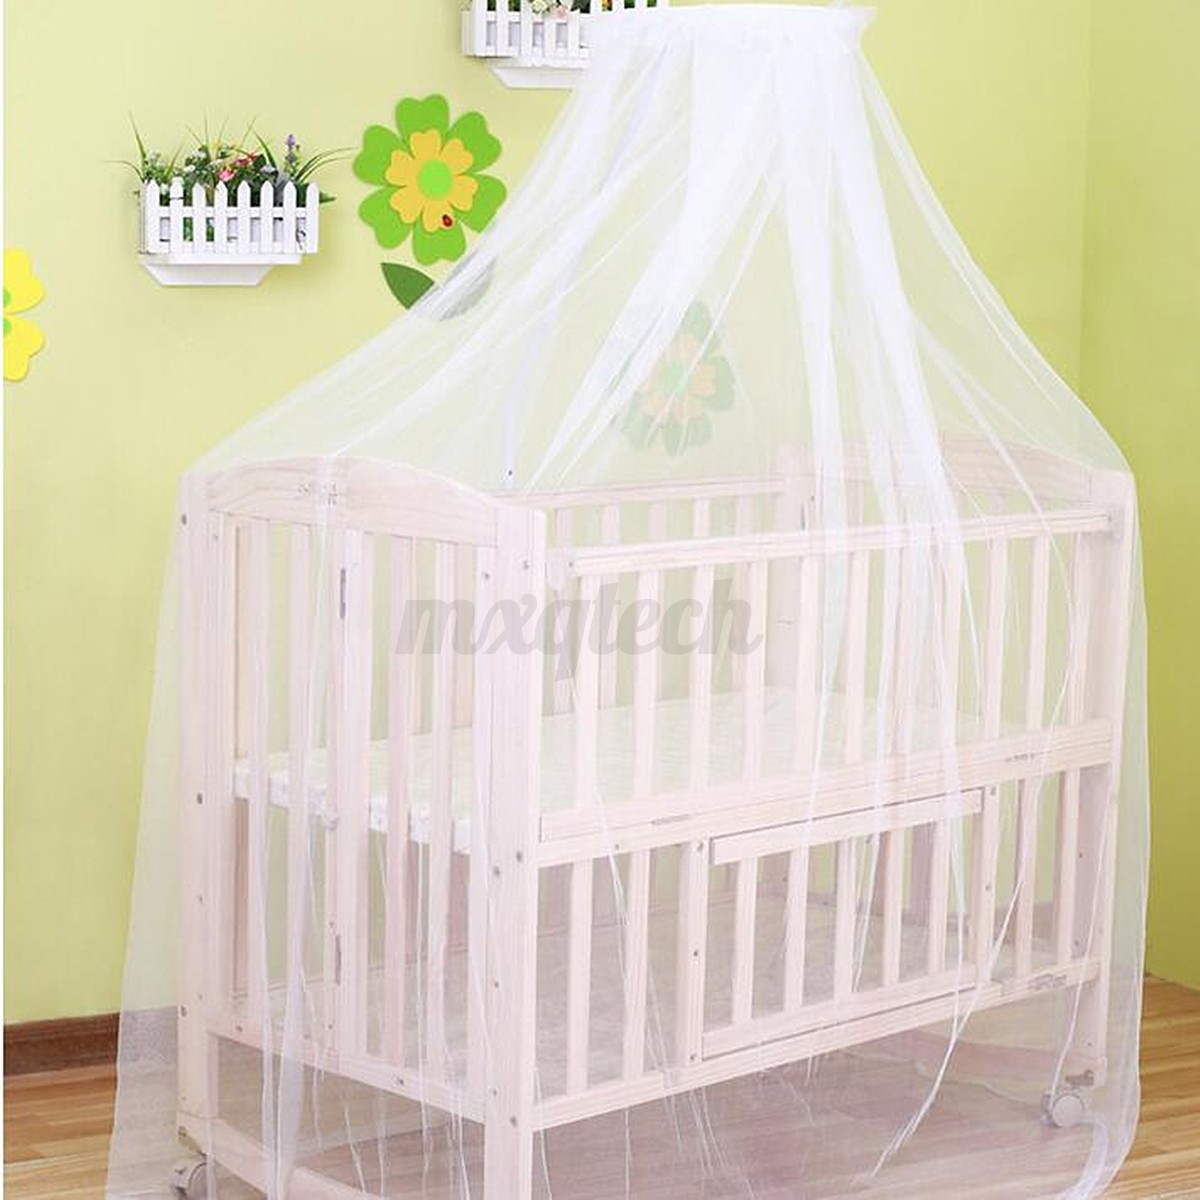 Round dome baby bed mosquito mesh curtain net for toddler for Baby crib net